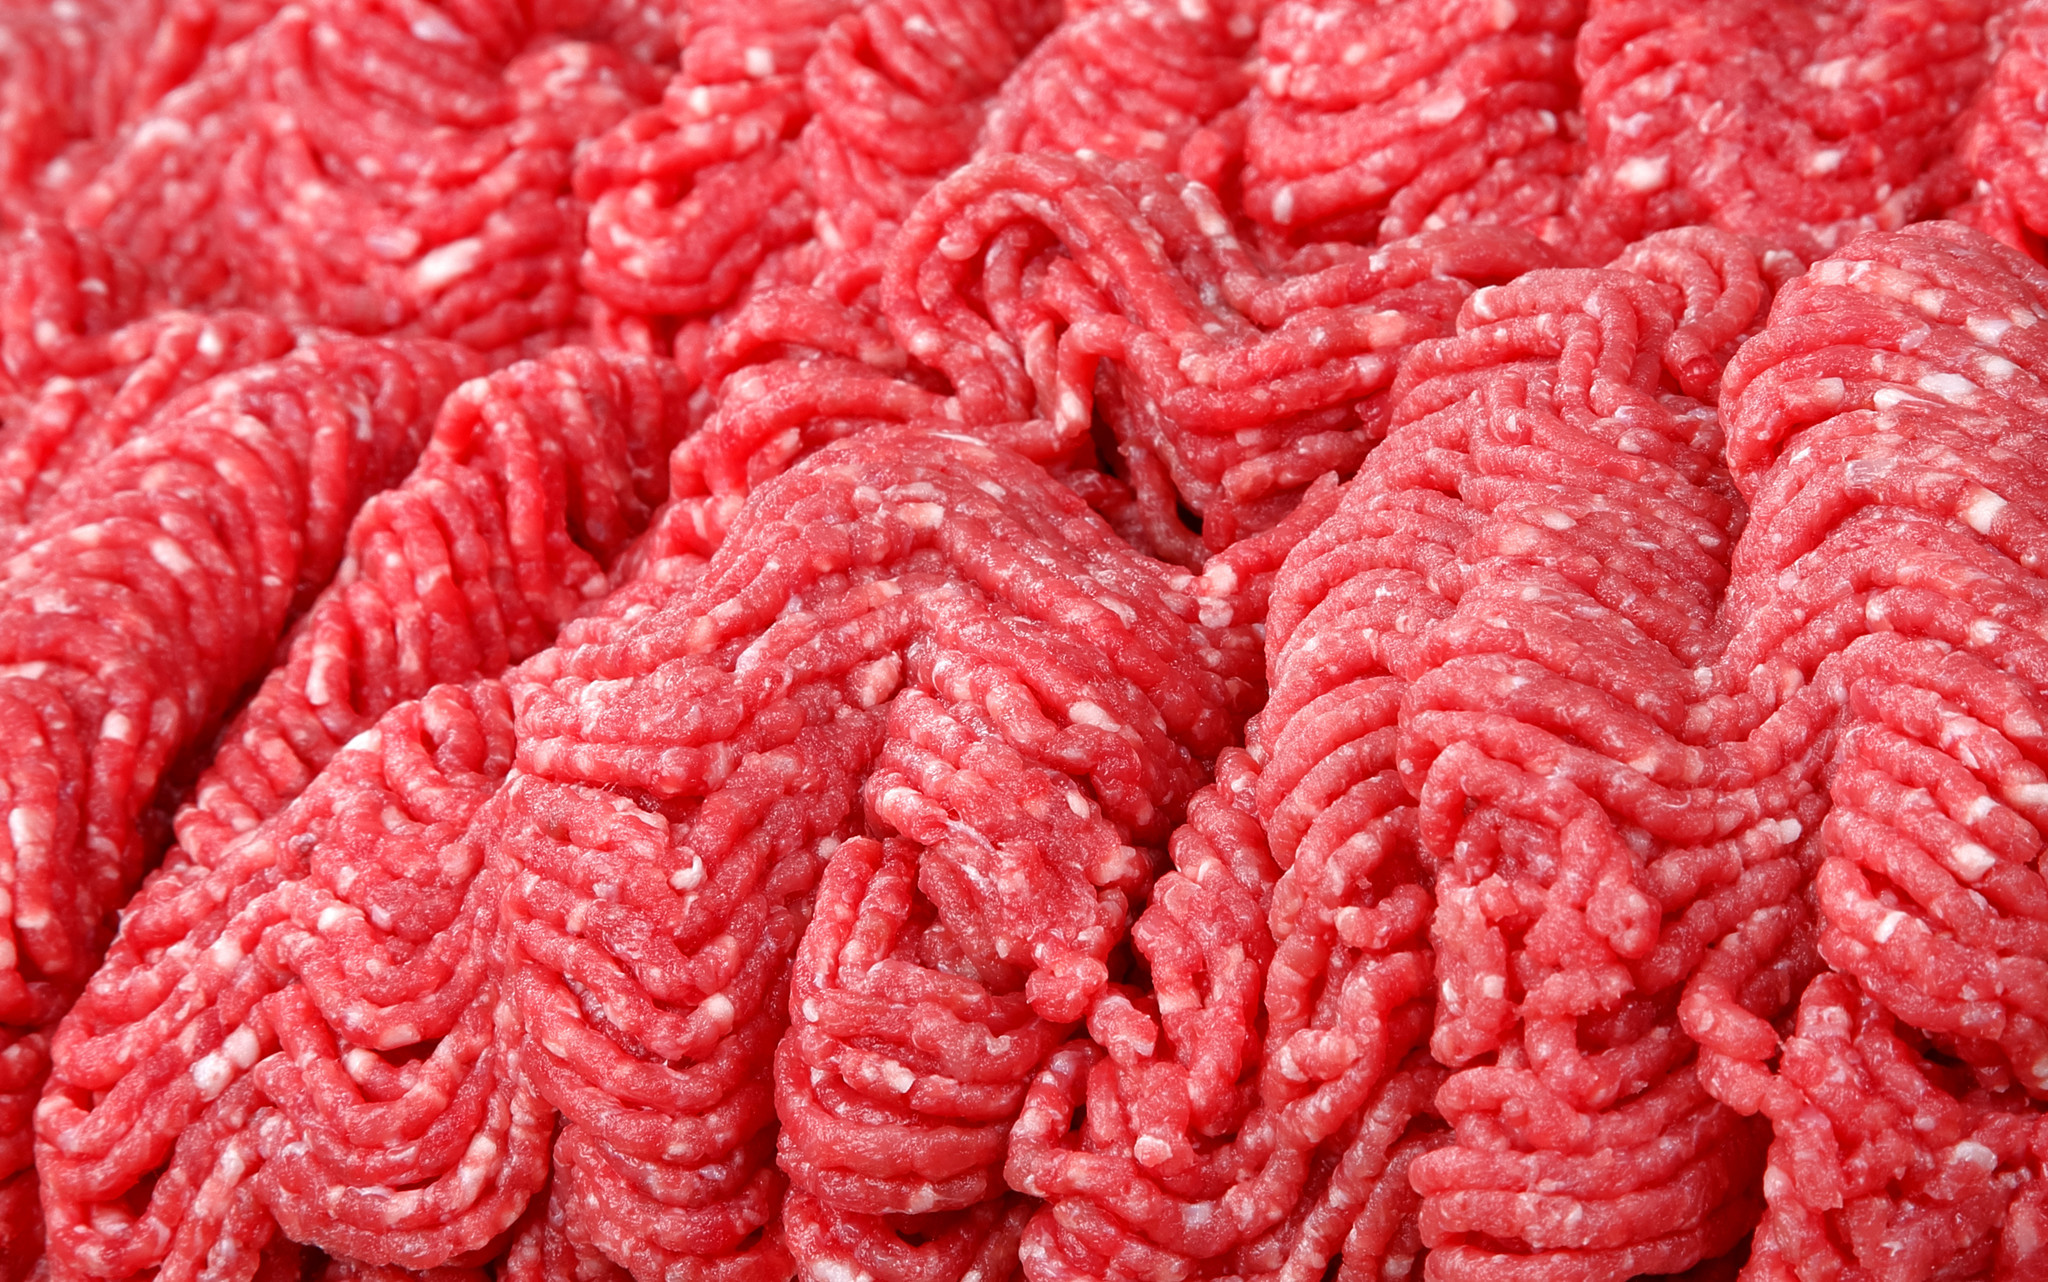 2,000 pounds of ground beef recalled in 9 states, including New York and New Jersey